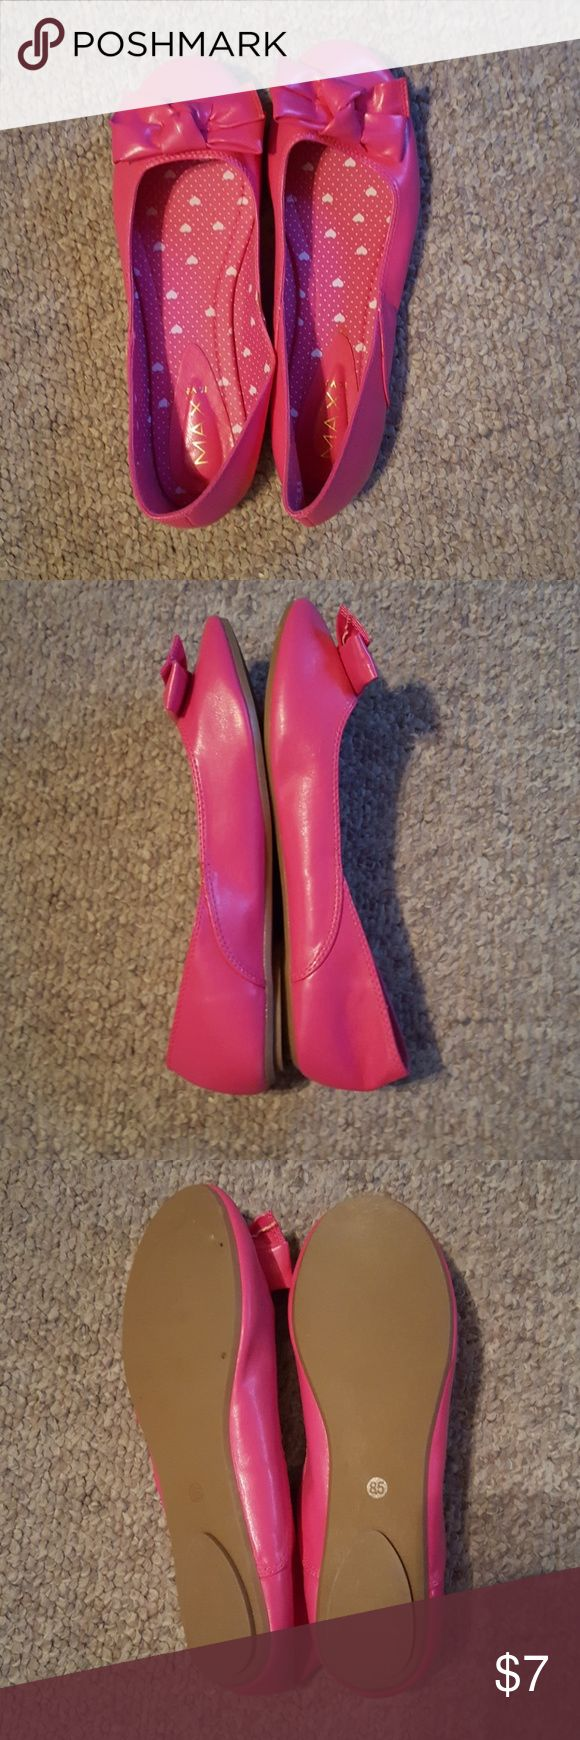 NWOT bright pink ballet flats with bows NWOT bright hot pink ballet flats with big bows. Says 8 1/2 fits more like an 8. Never worn Max Rave Shoes Flats & Loafers